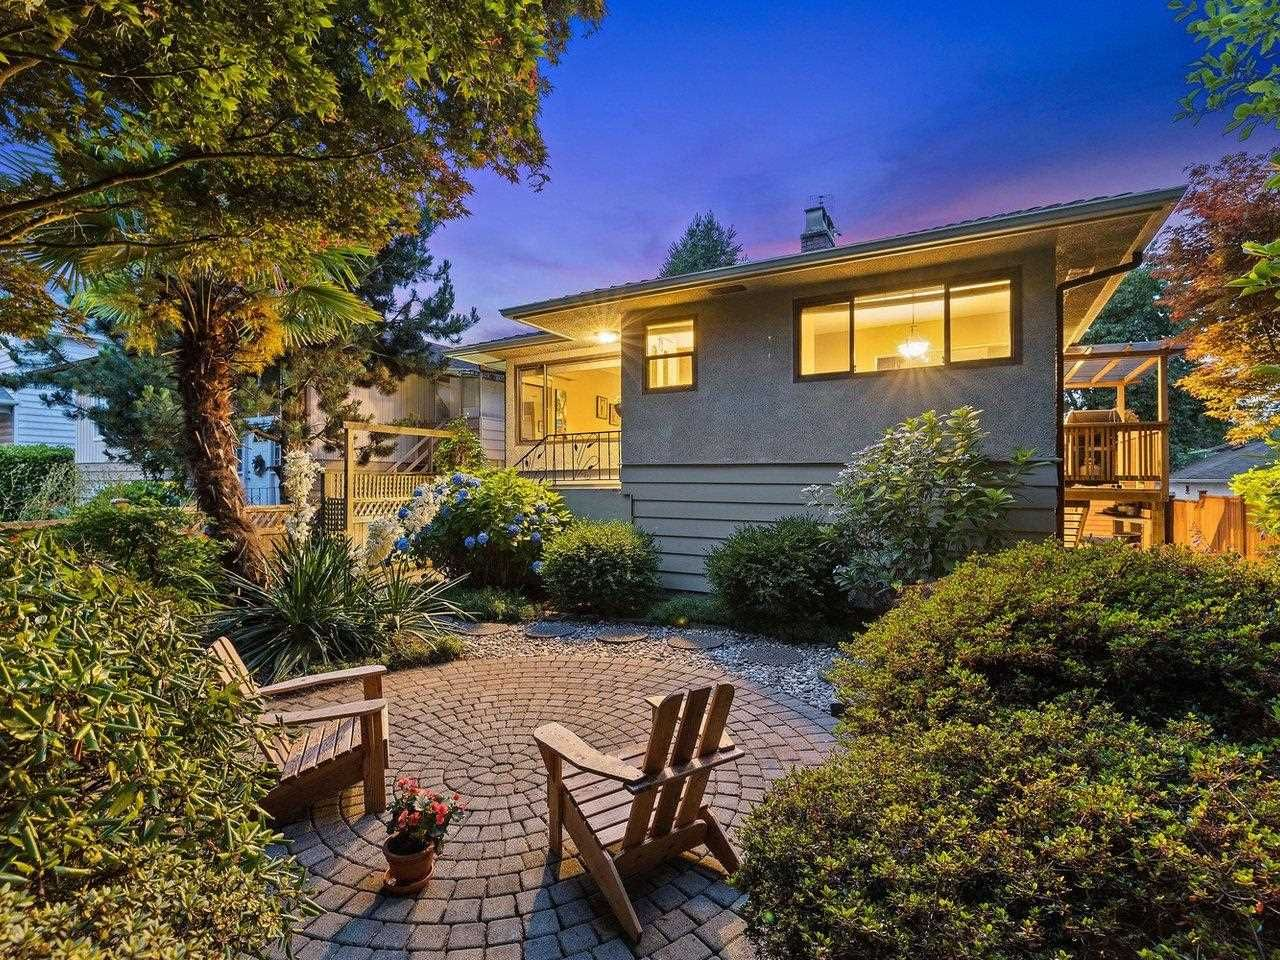 Main Photo: 1721 MAHON Avenue in North Vancouver: Central Lonsdale House for sale : MLS®# R2601176